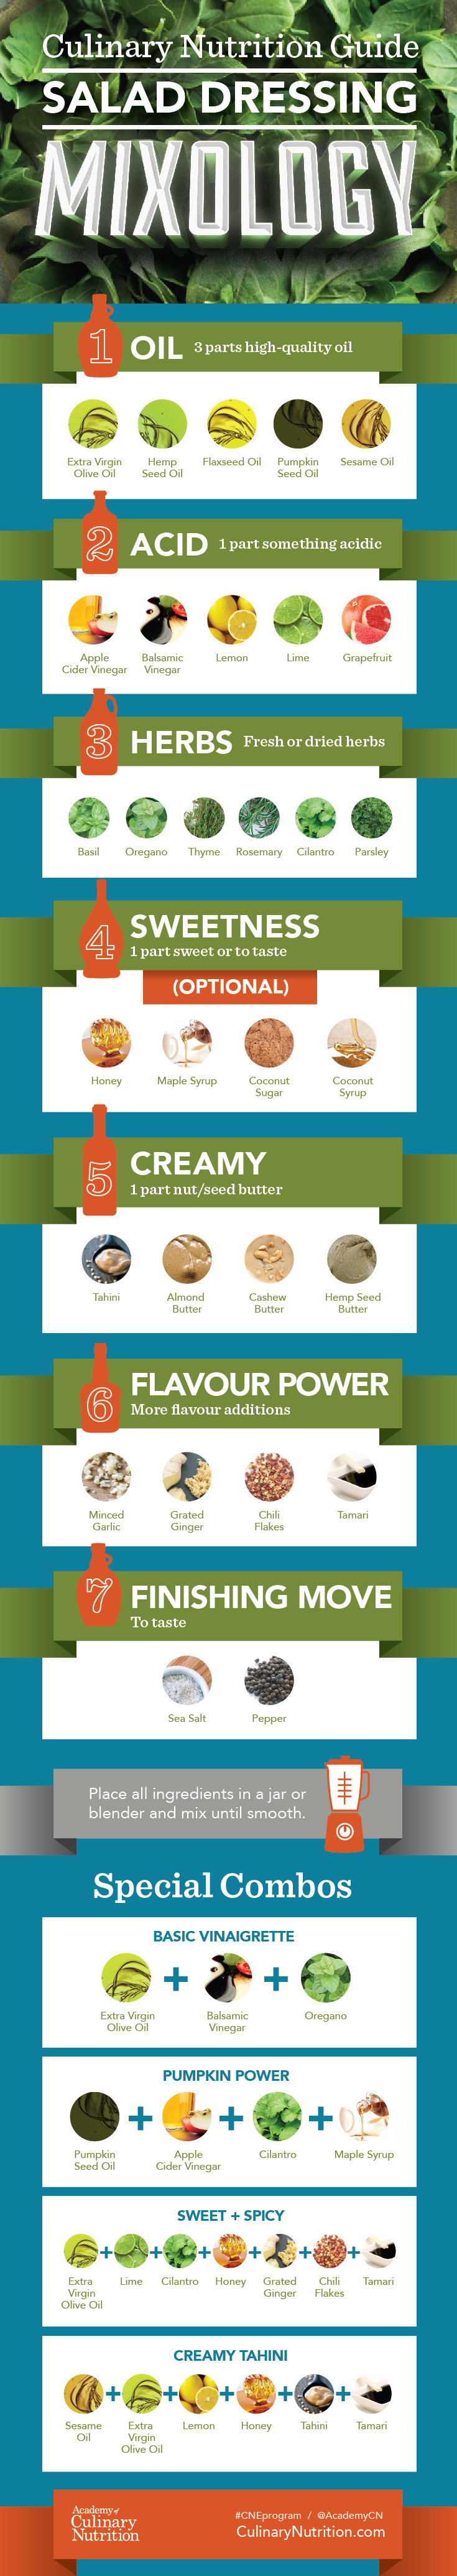 The Ultimate Guide to Perfectly Dressing a Salad - Infographic